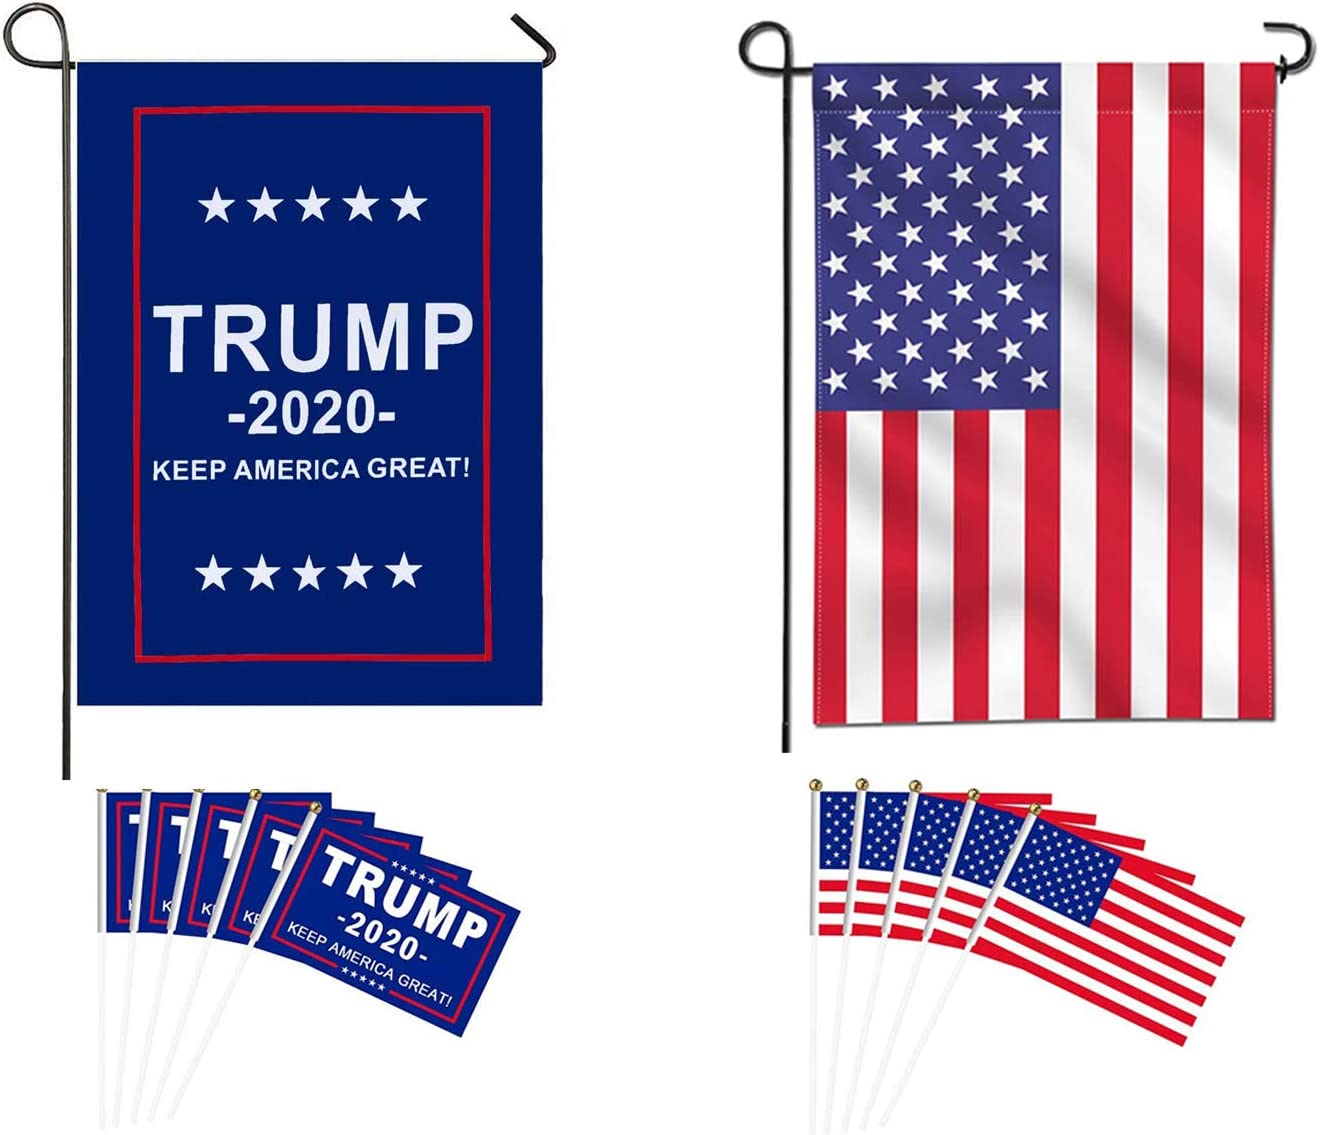 Taygate American Double Sided Nylon Garden Flag Donald Trump for President 2020 Keep America Great Garden Flag,Election Day Party Event Decorations with 10 Pack Small Hand Held Stick Flags